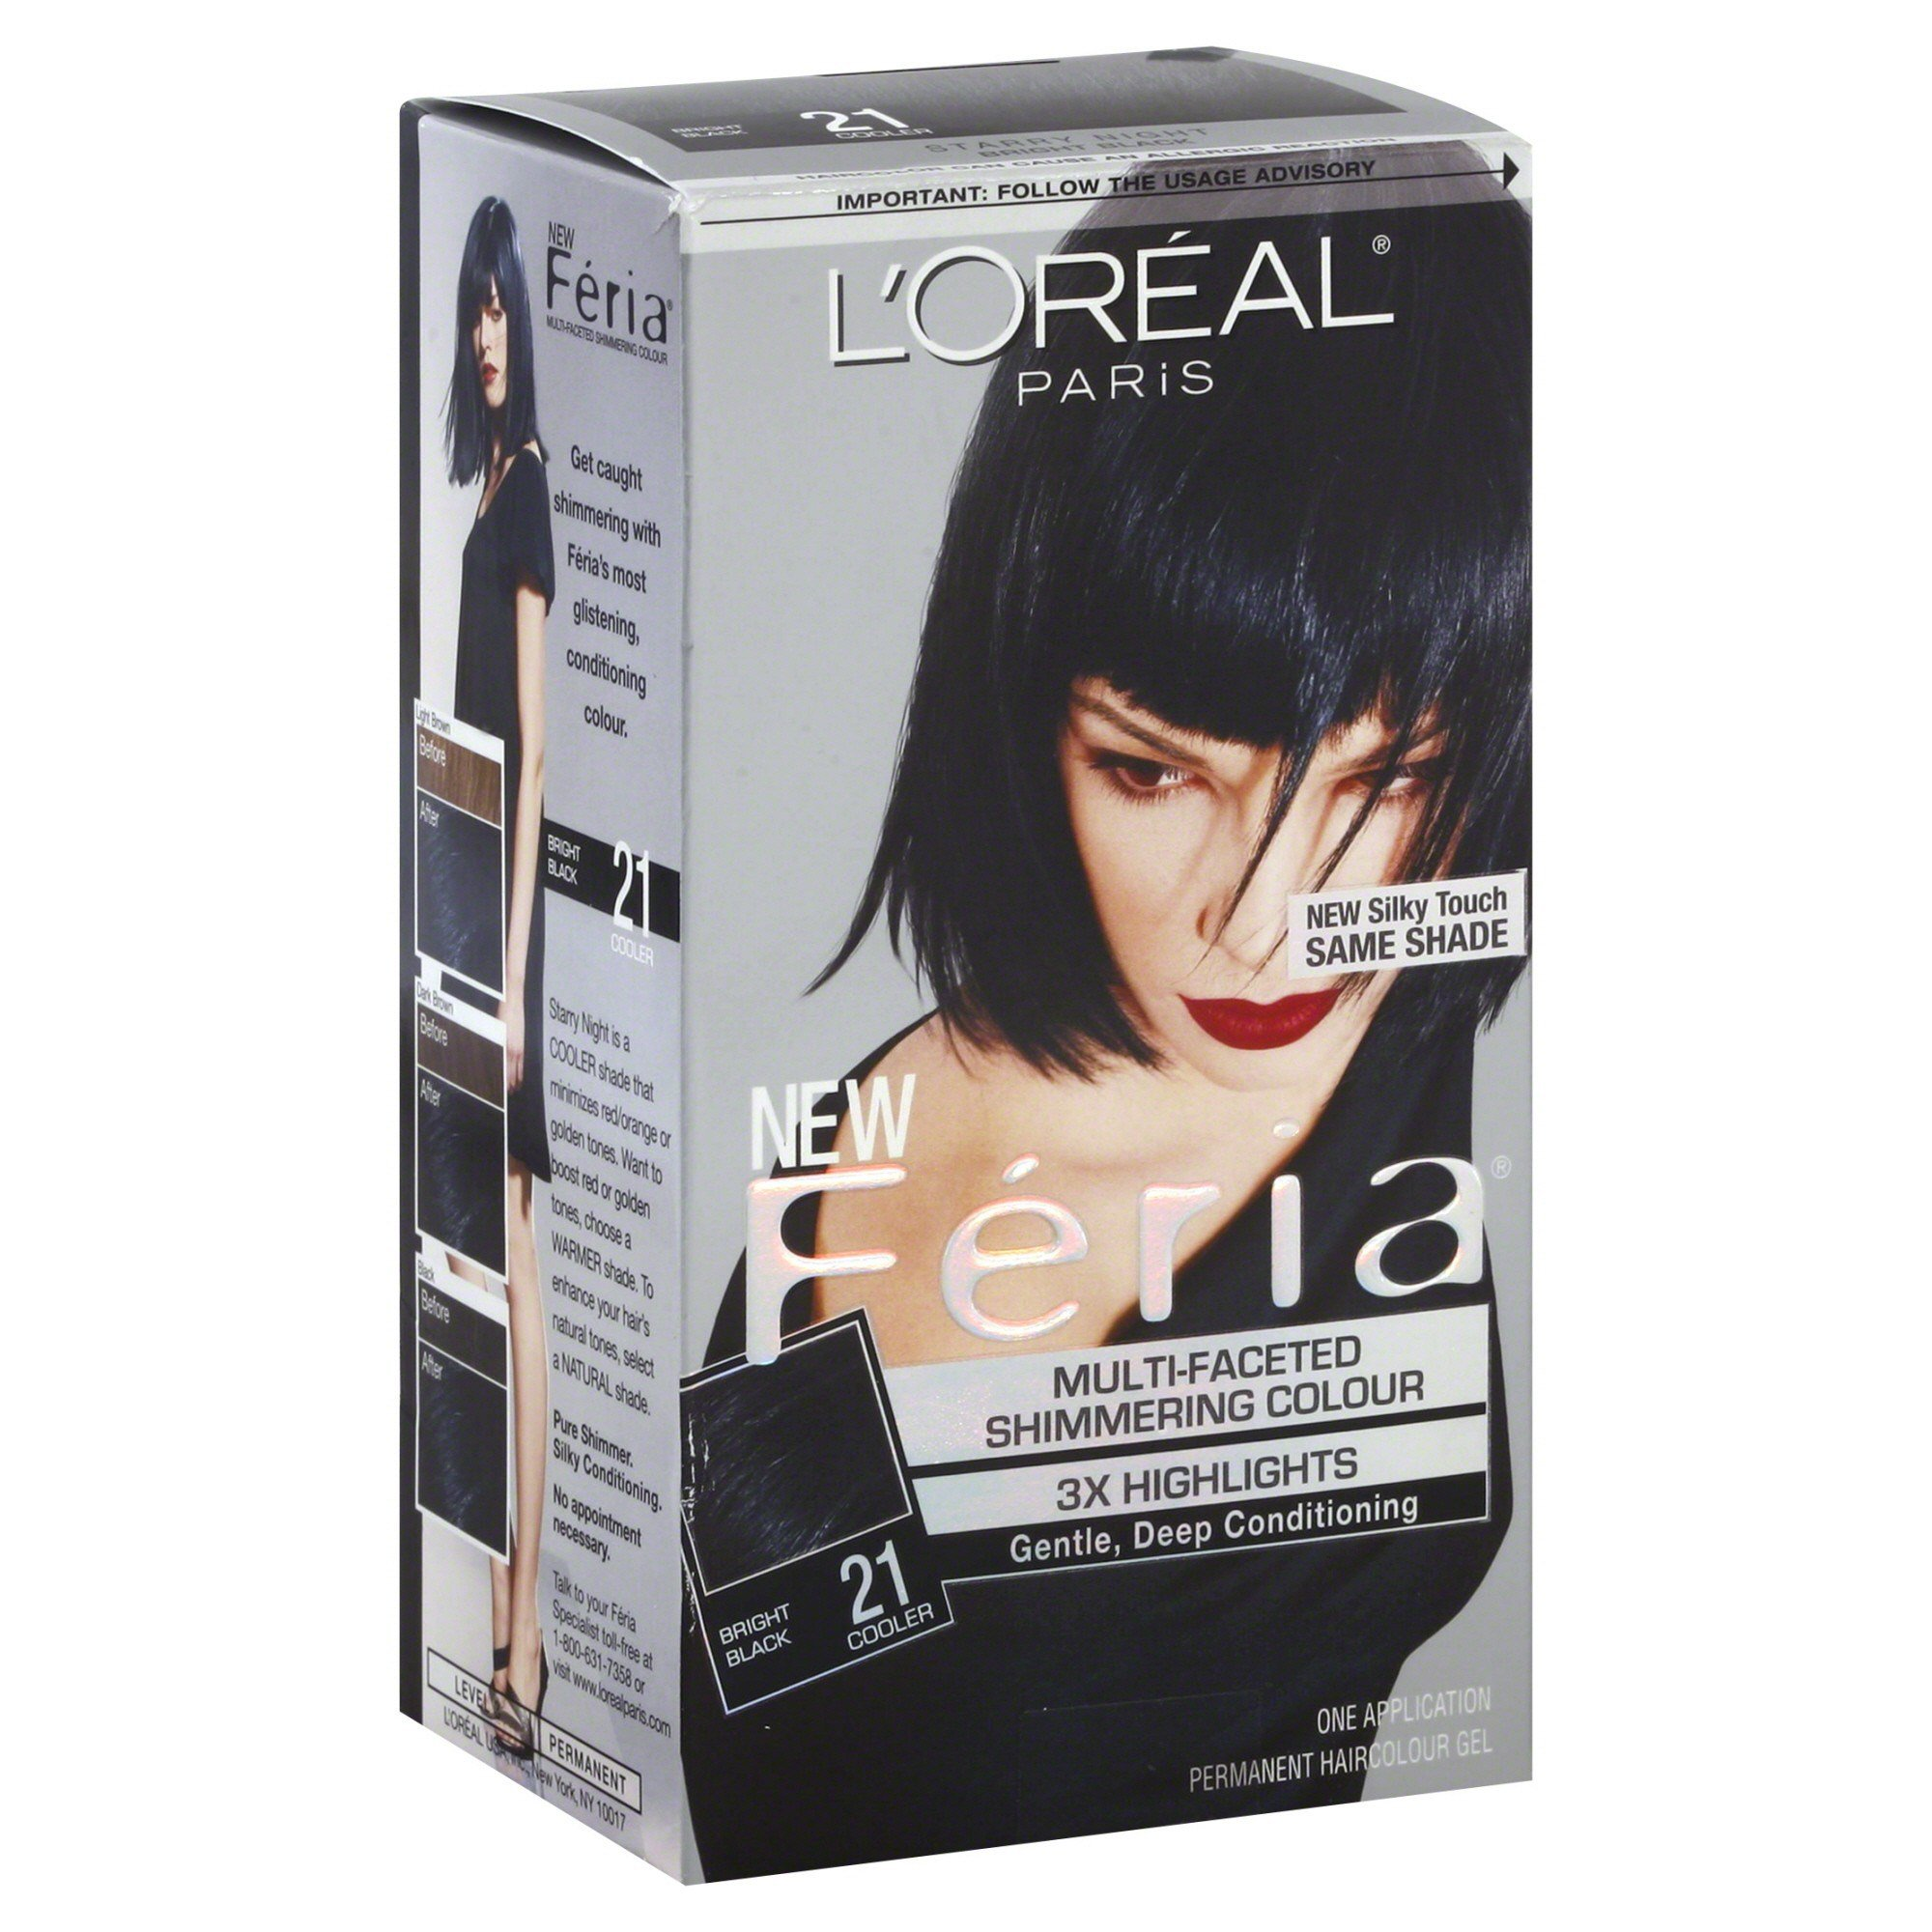 The Best Feria Permanent Haircolour Gel Cooler Bright Black 21 1 Pictures